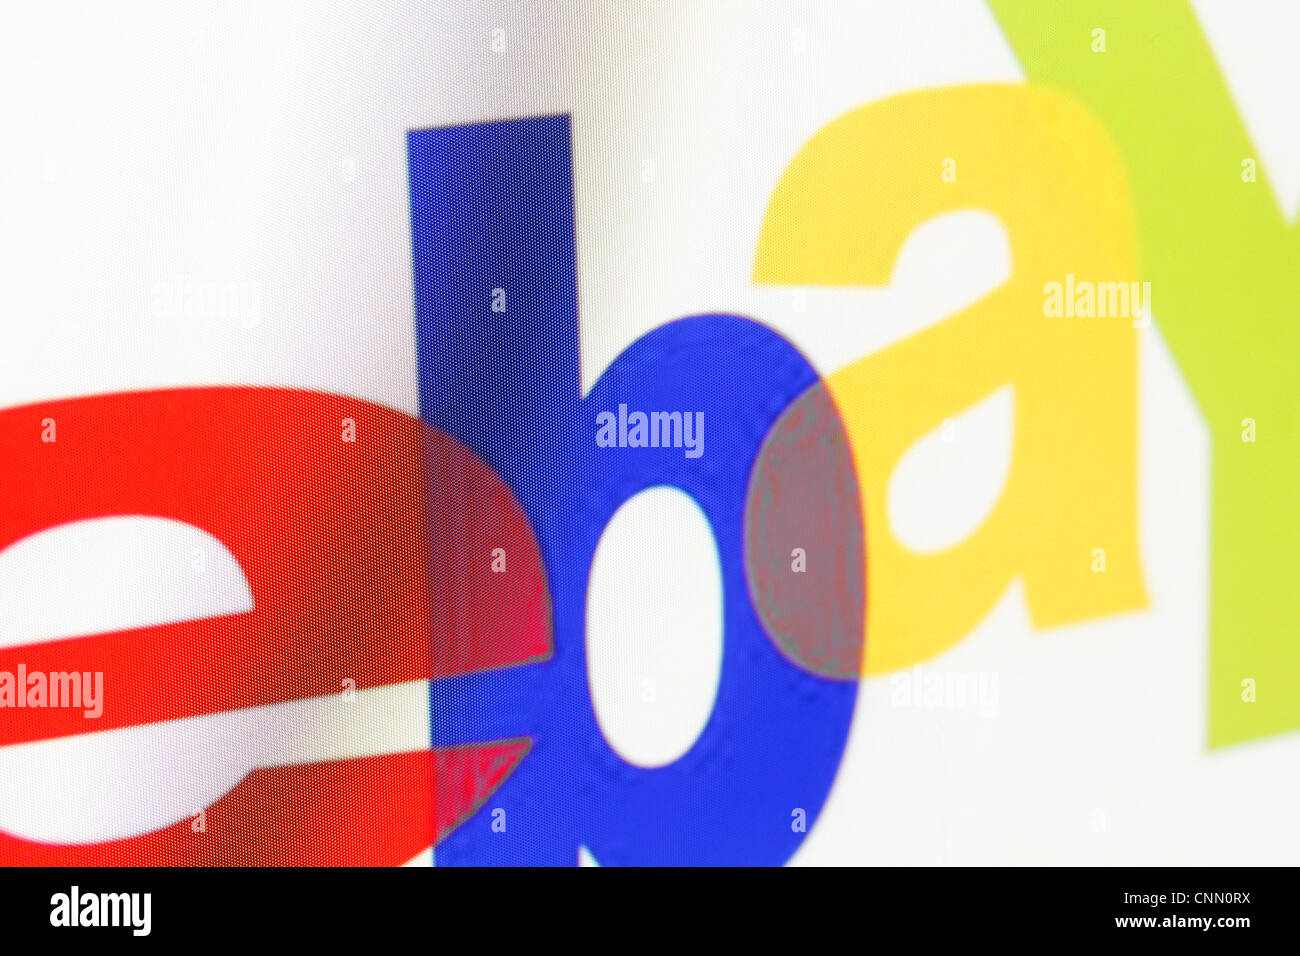 Ebay logo on a monitor screen - Stock Image